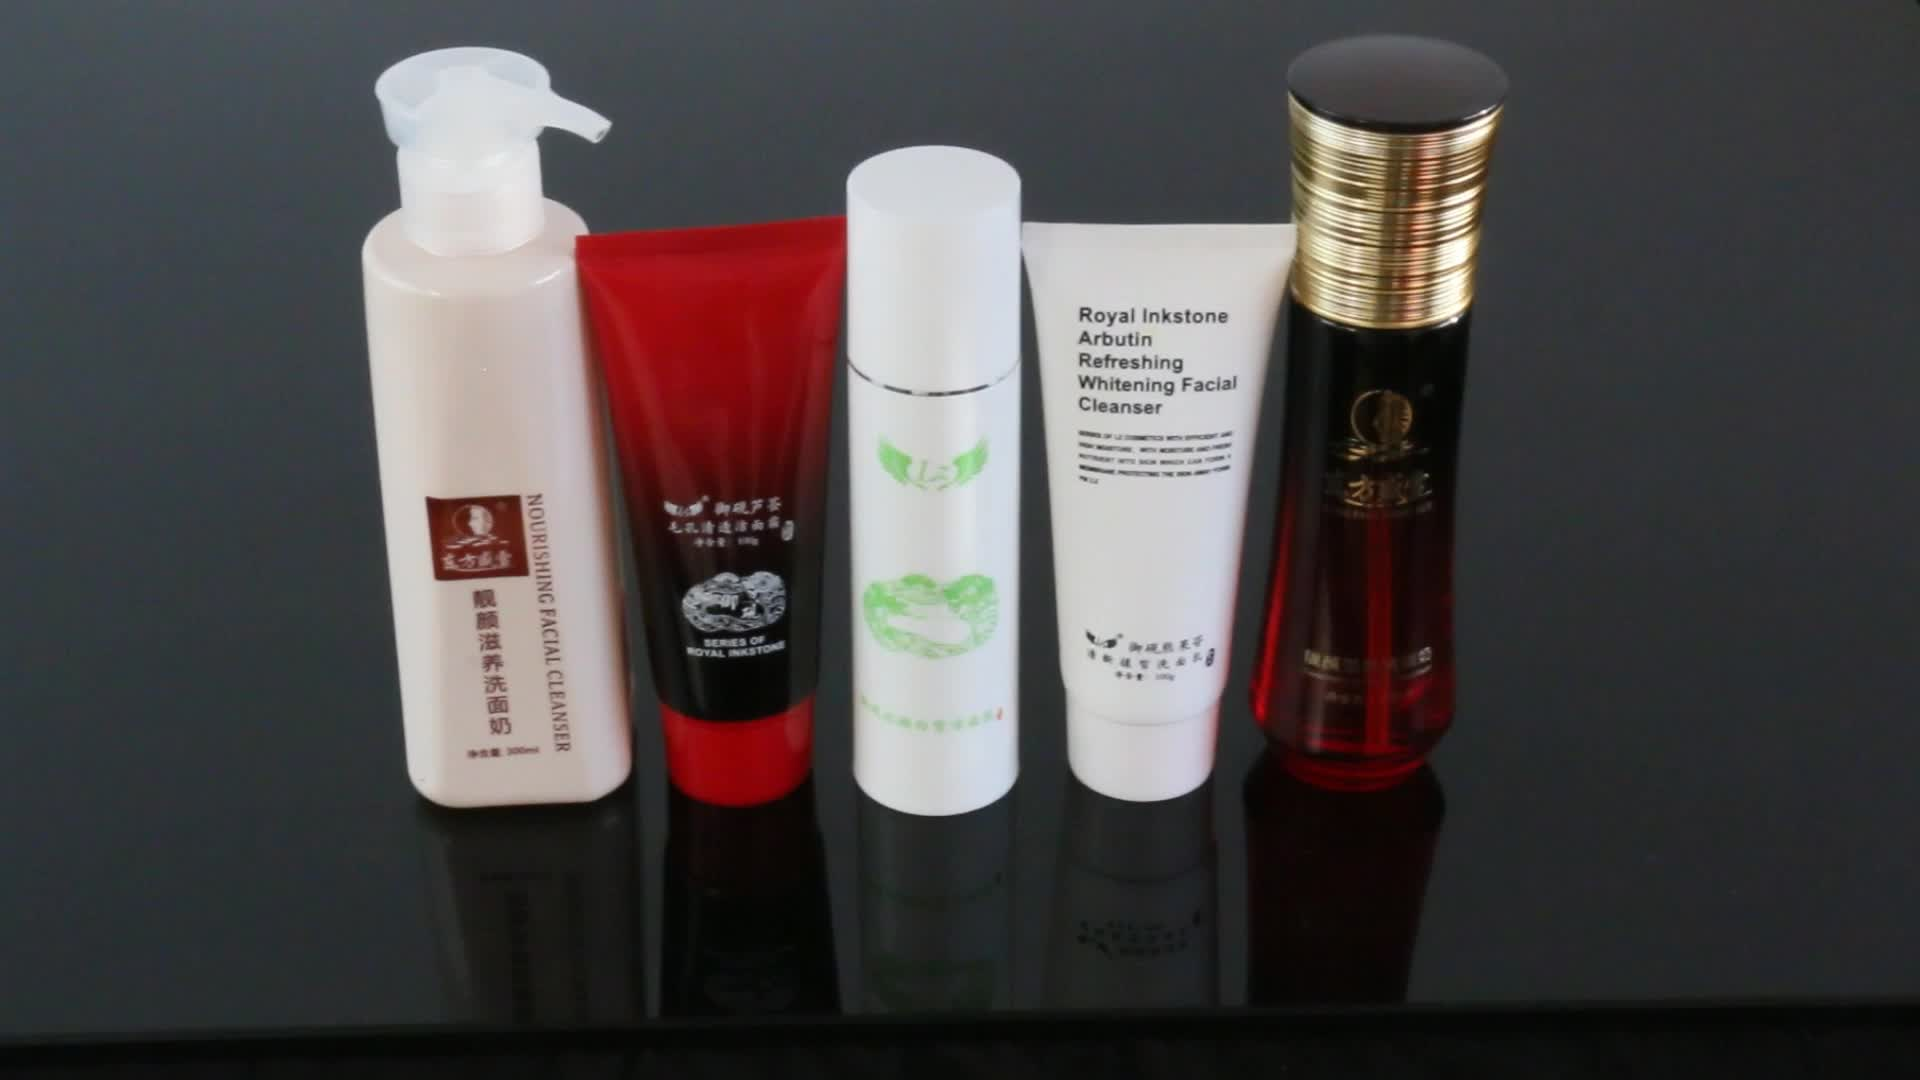 whitening face wash and eskinol facial cleanser